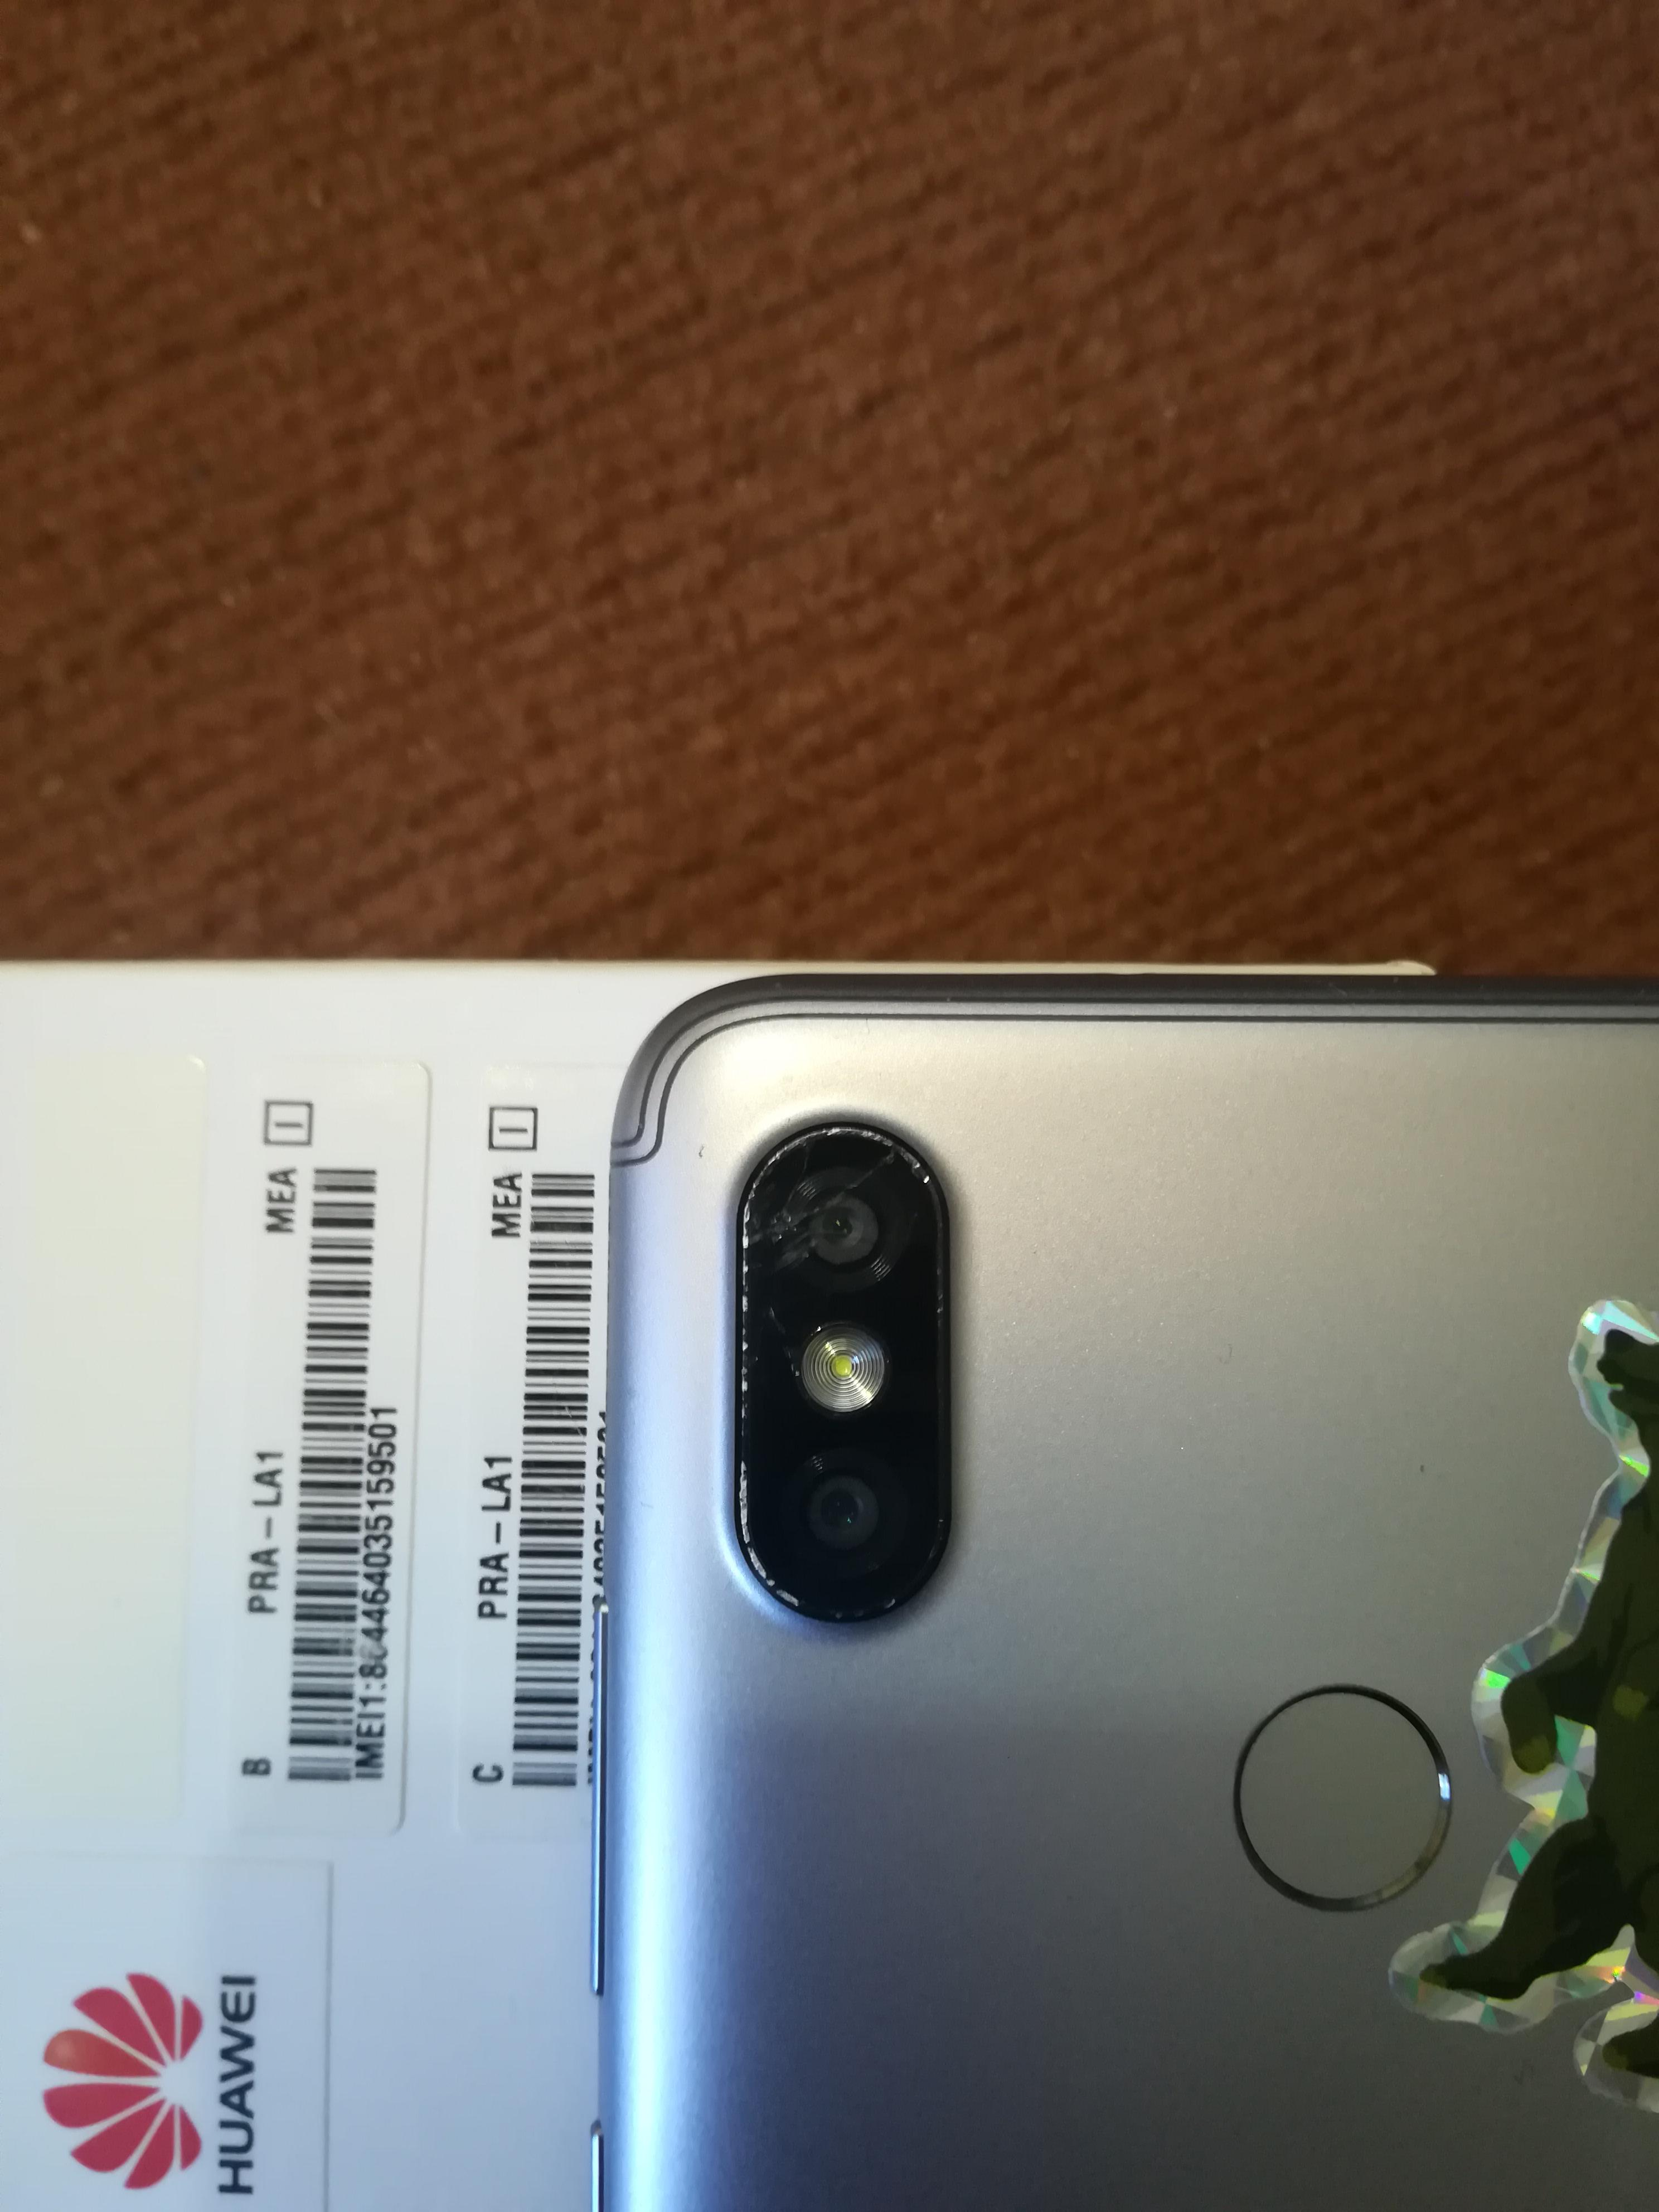 Hi i broke my cam protector (its xiaomi) and i cannot find this part in my country. But i found iphone x parts are just same but i dont know if size matchs so can anyone with ipho e x or xs give me size of this plastic part width and lenth so i can compare. hi-i-broke-my-cam-protector-its-xiaomi-and-i-cannot-find-this-part-in-my-country-but-i-found-iphone-x-parts-are-just-same-but-i-dont-know-if-size-matchs-so-can-anyone-with-ipho-e-x-or-xs-give-me-si